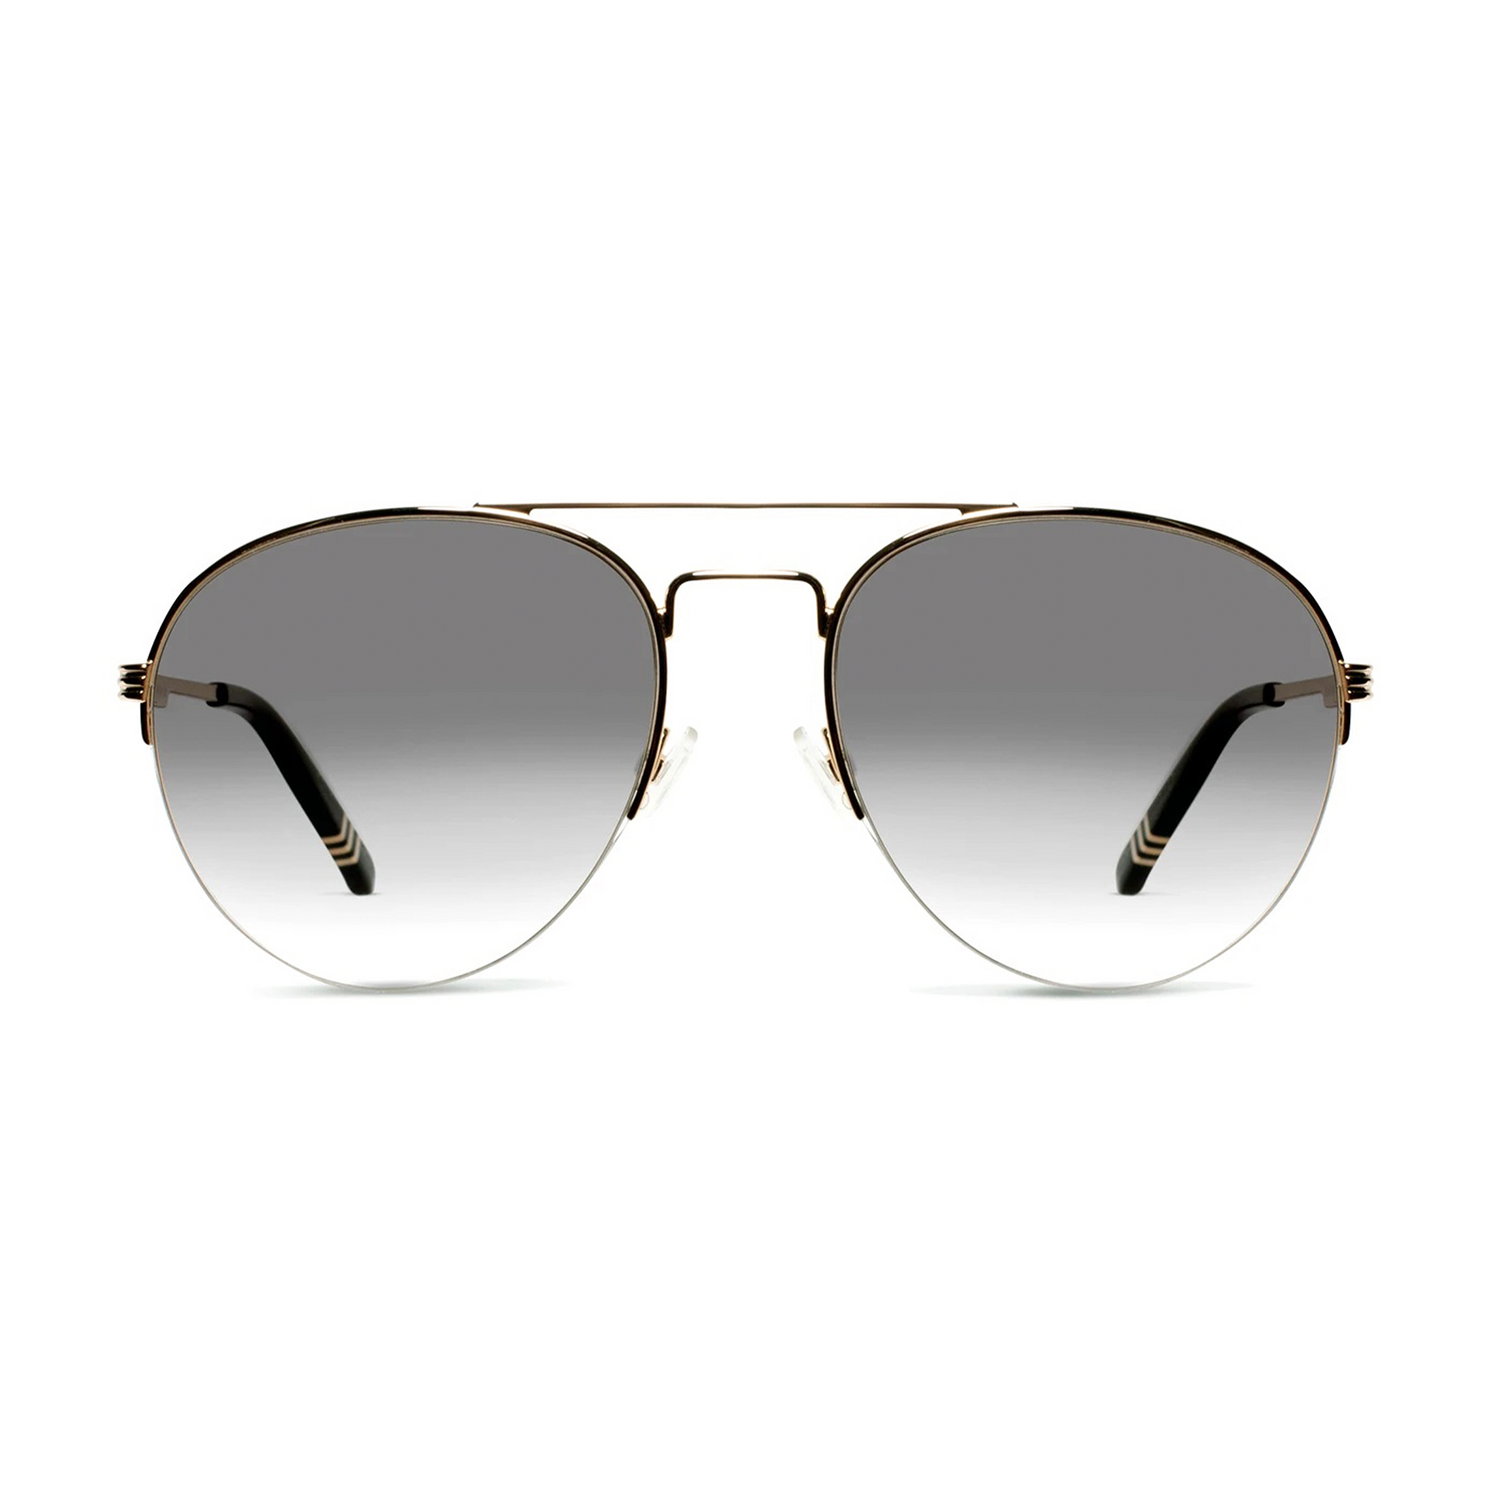 gold-black-with-gradient-lenses